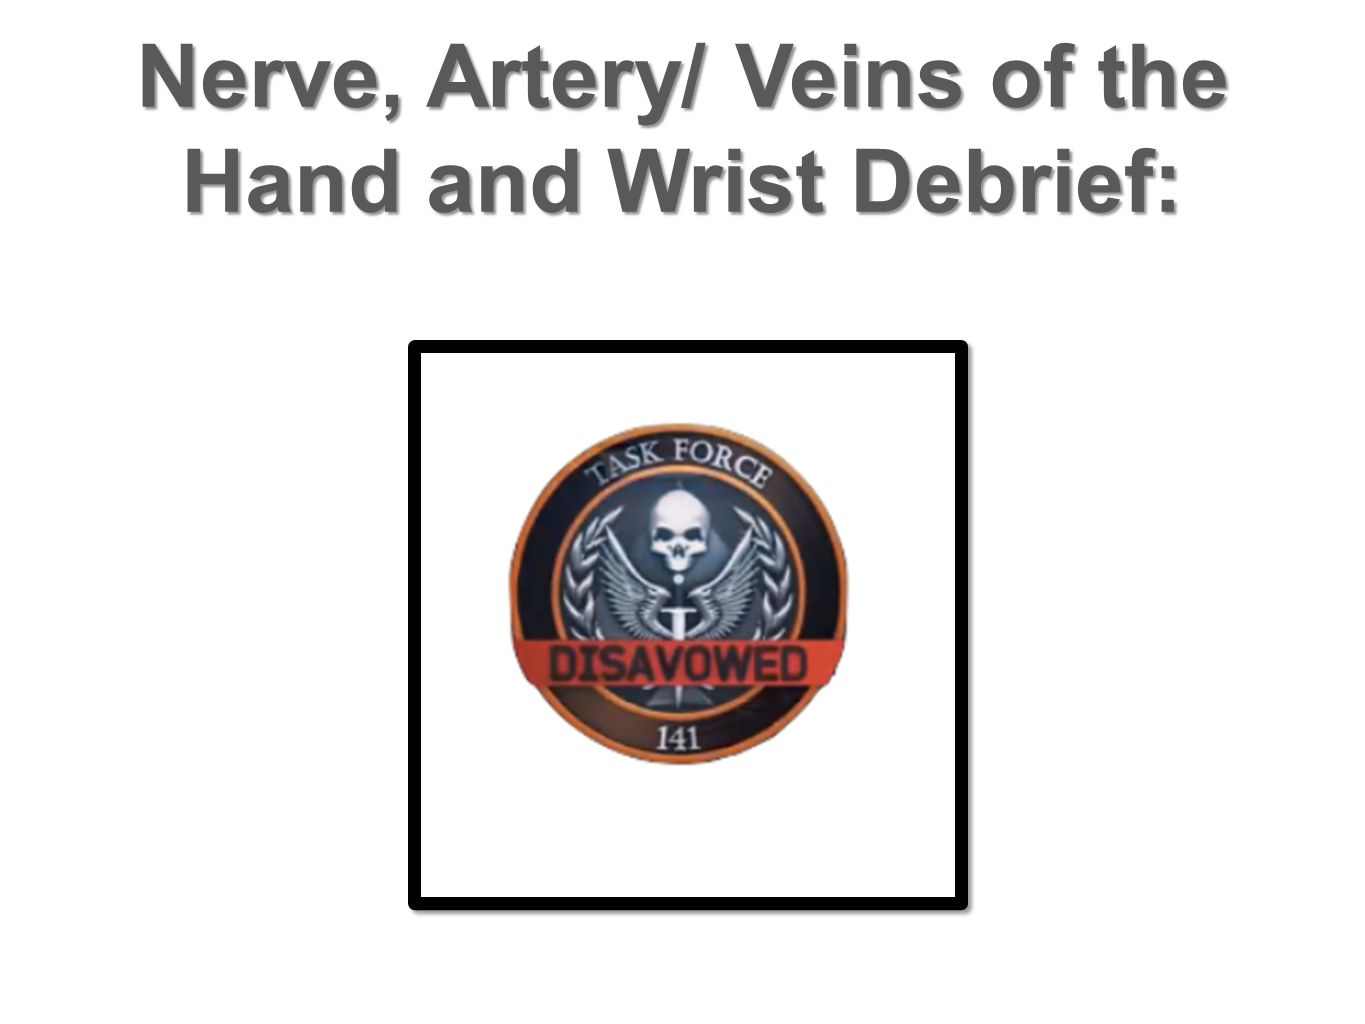 Nerve, Artery/ Veins of the Hand and Wrist Debrief: